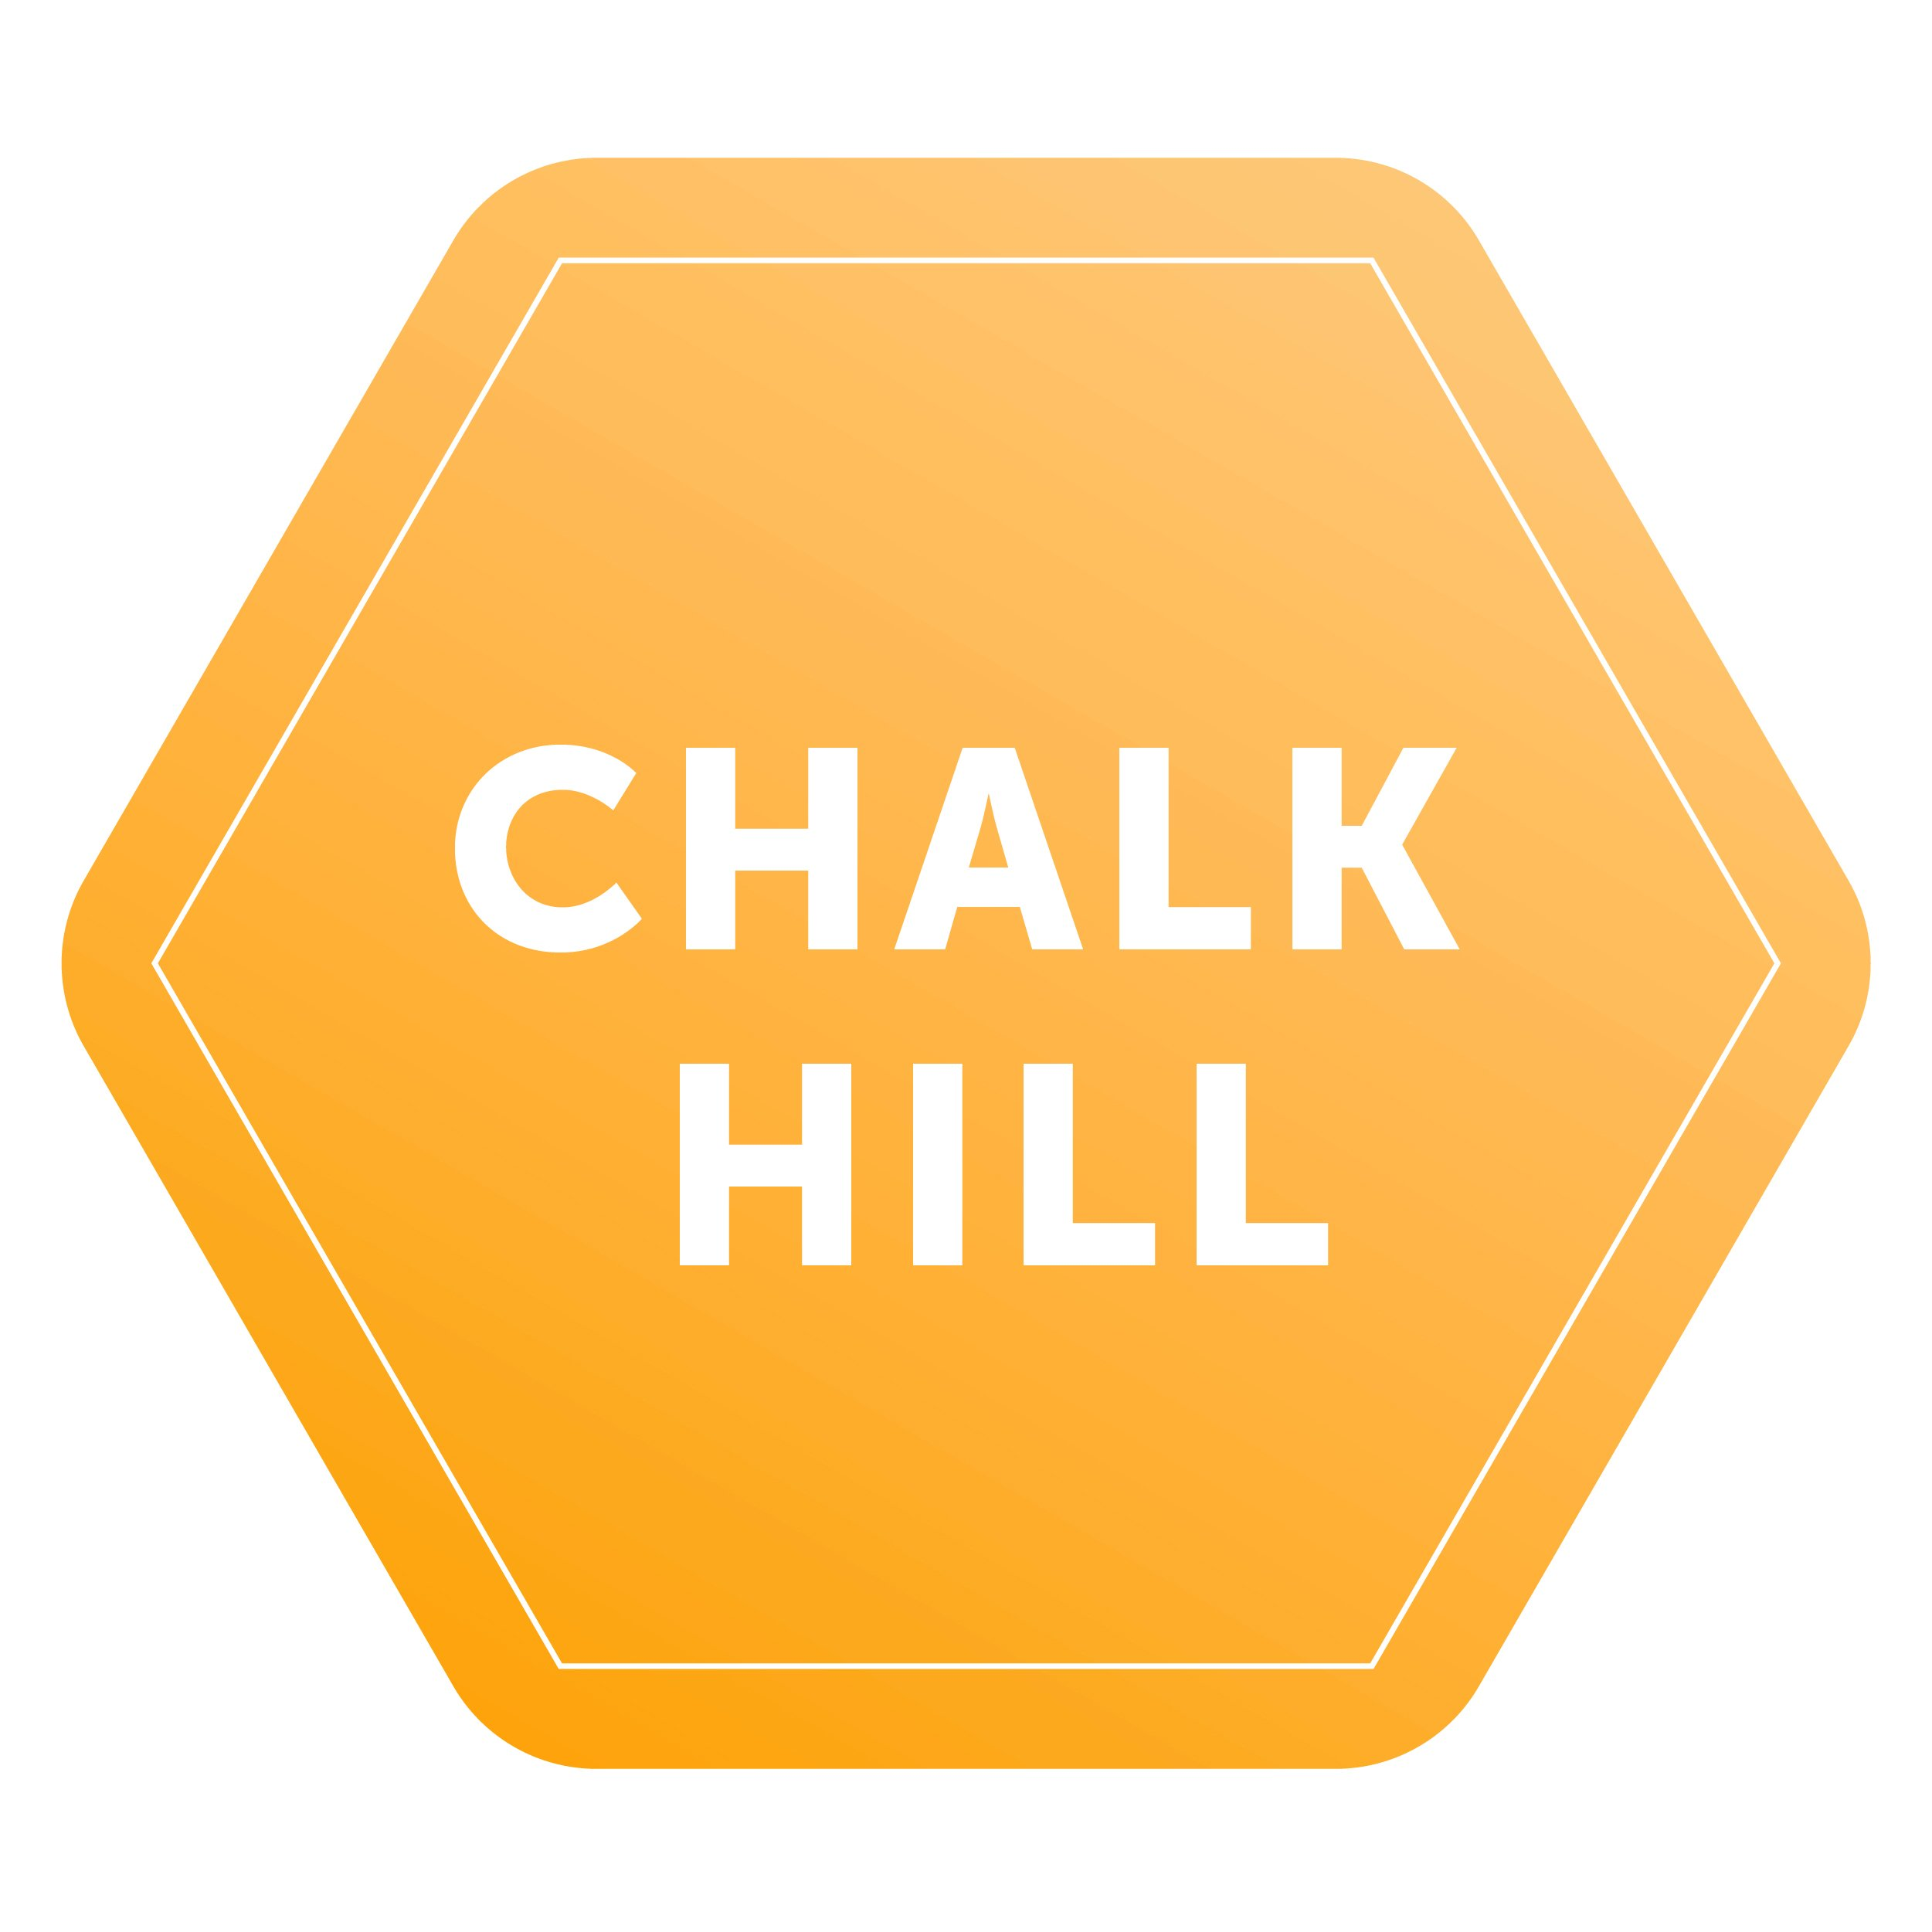 Chalk Hill logo, yellow